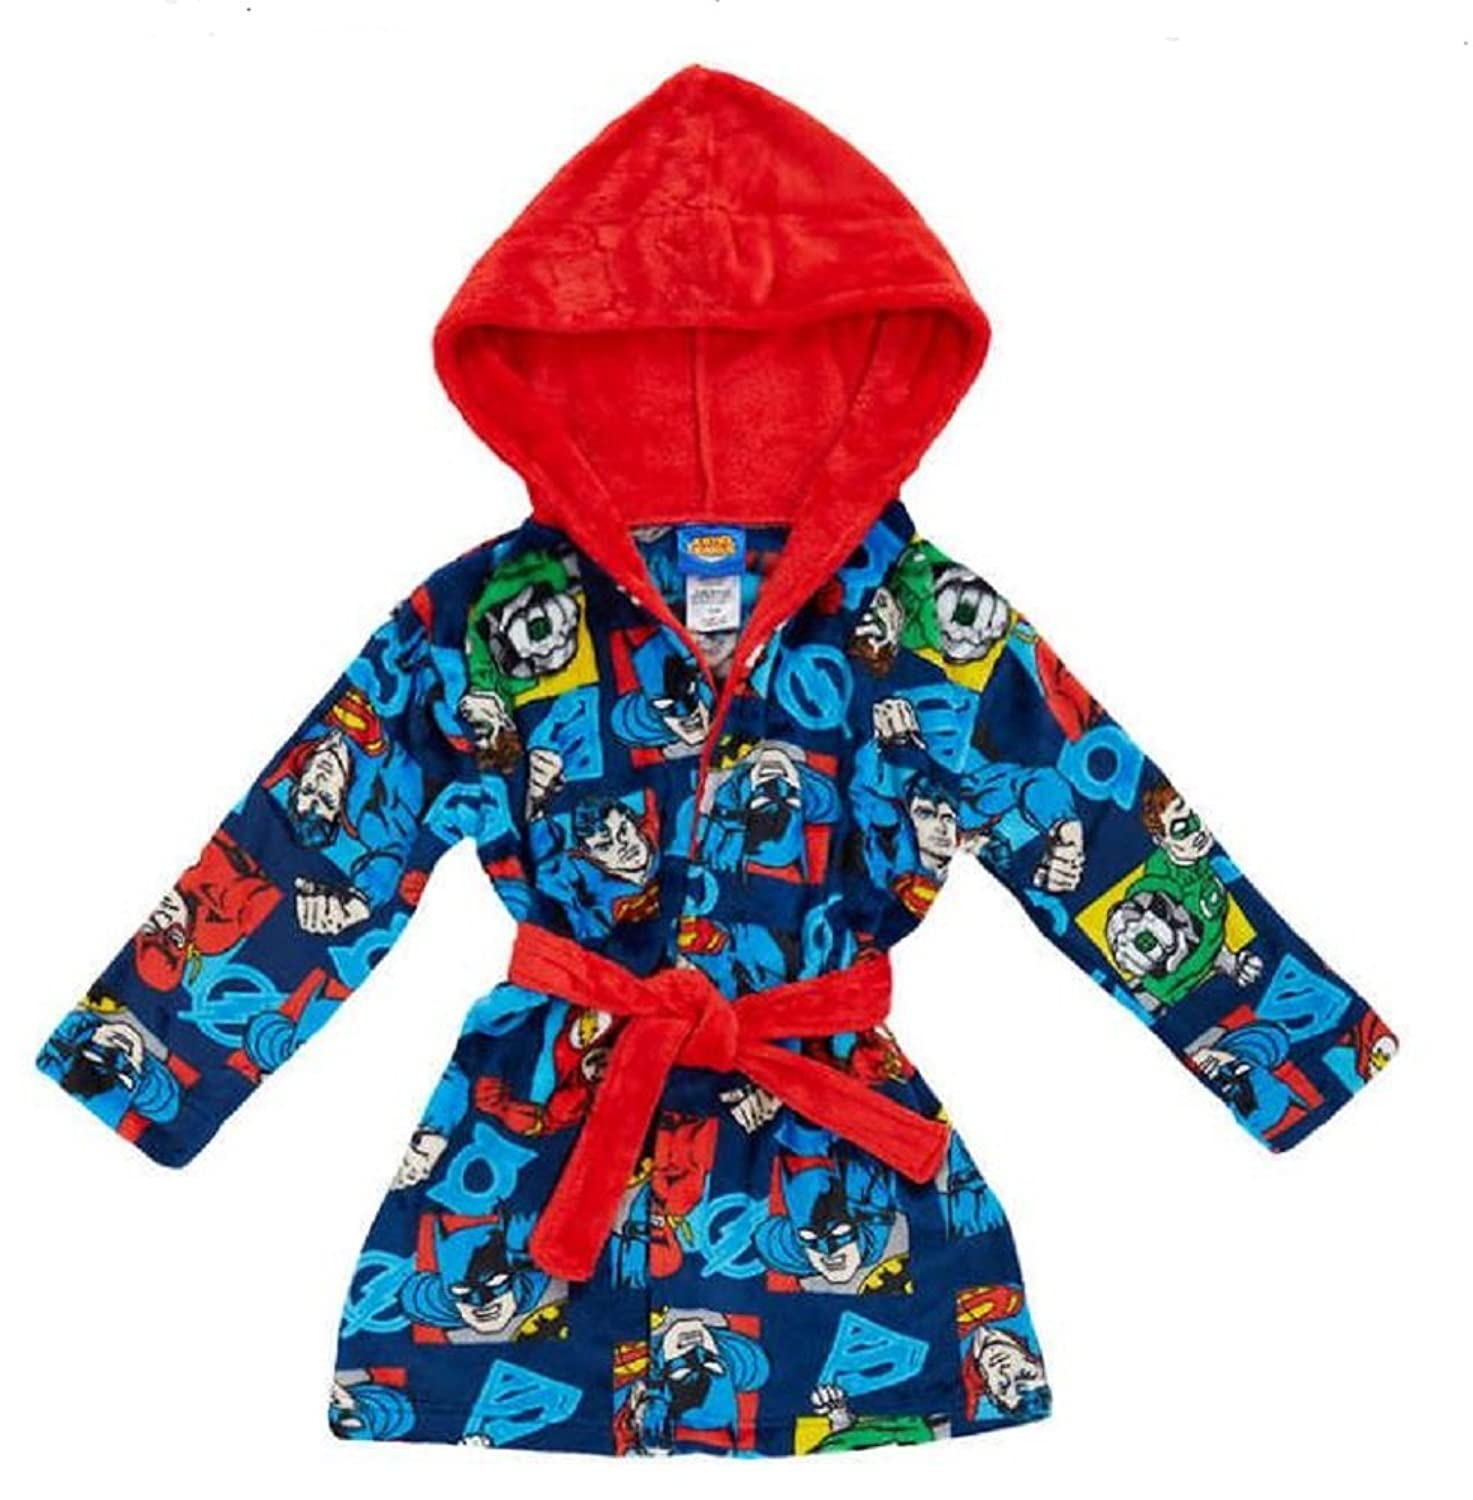 Amazon.com: Captain America Kids Dressing Gowns 2-3 Years: Clothing